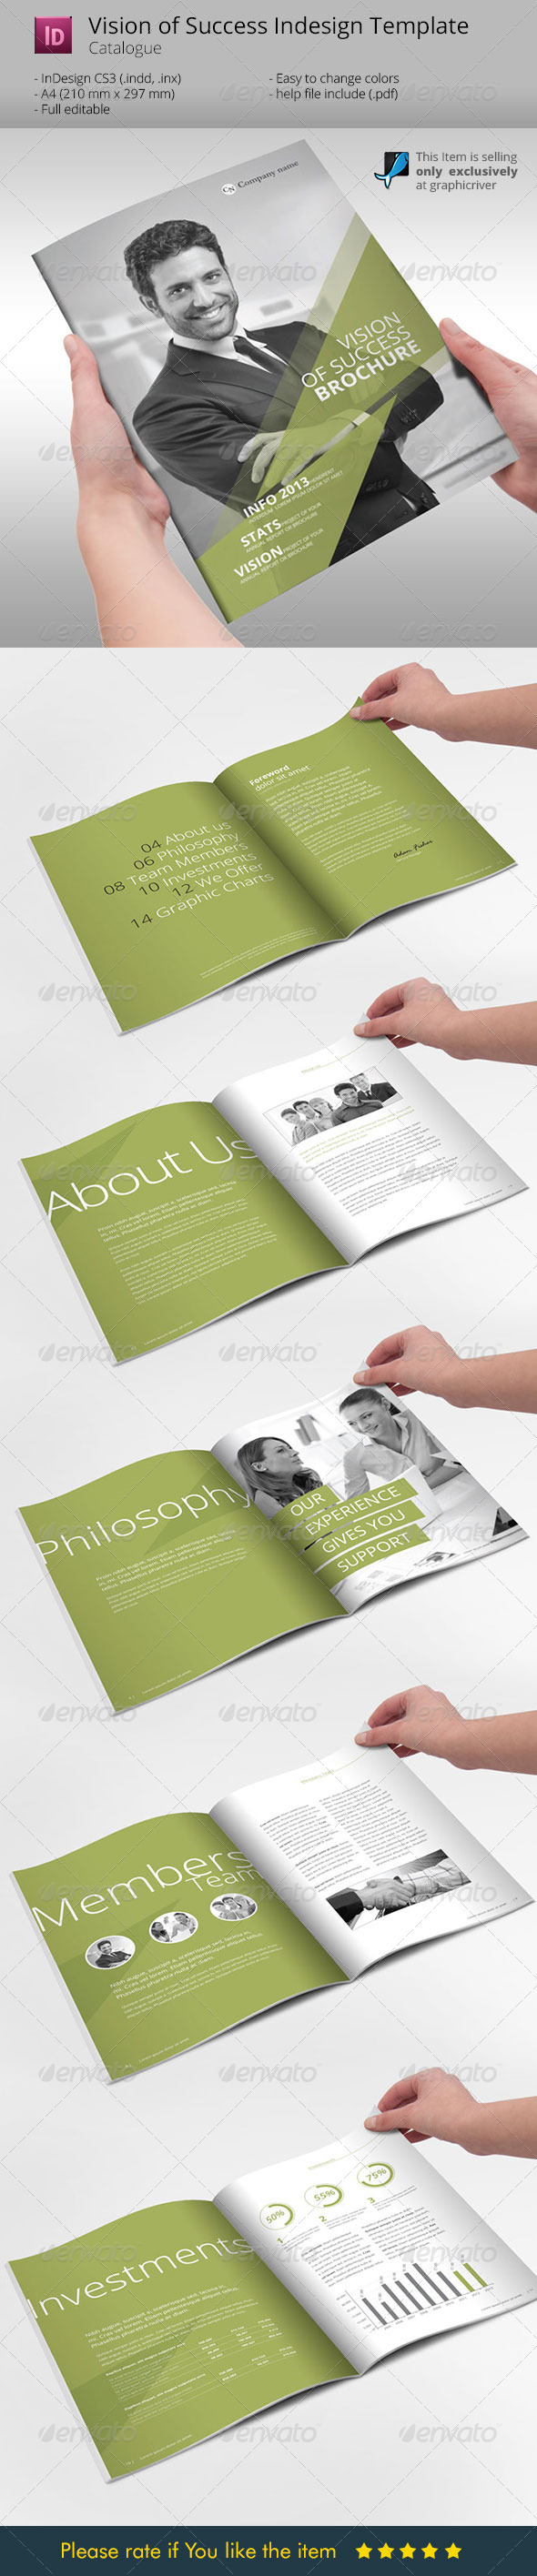 GraphicRiver Vision of Success Indesign Template Brochure 6138801